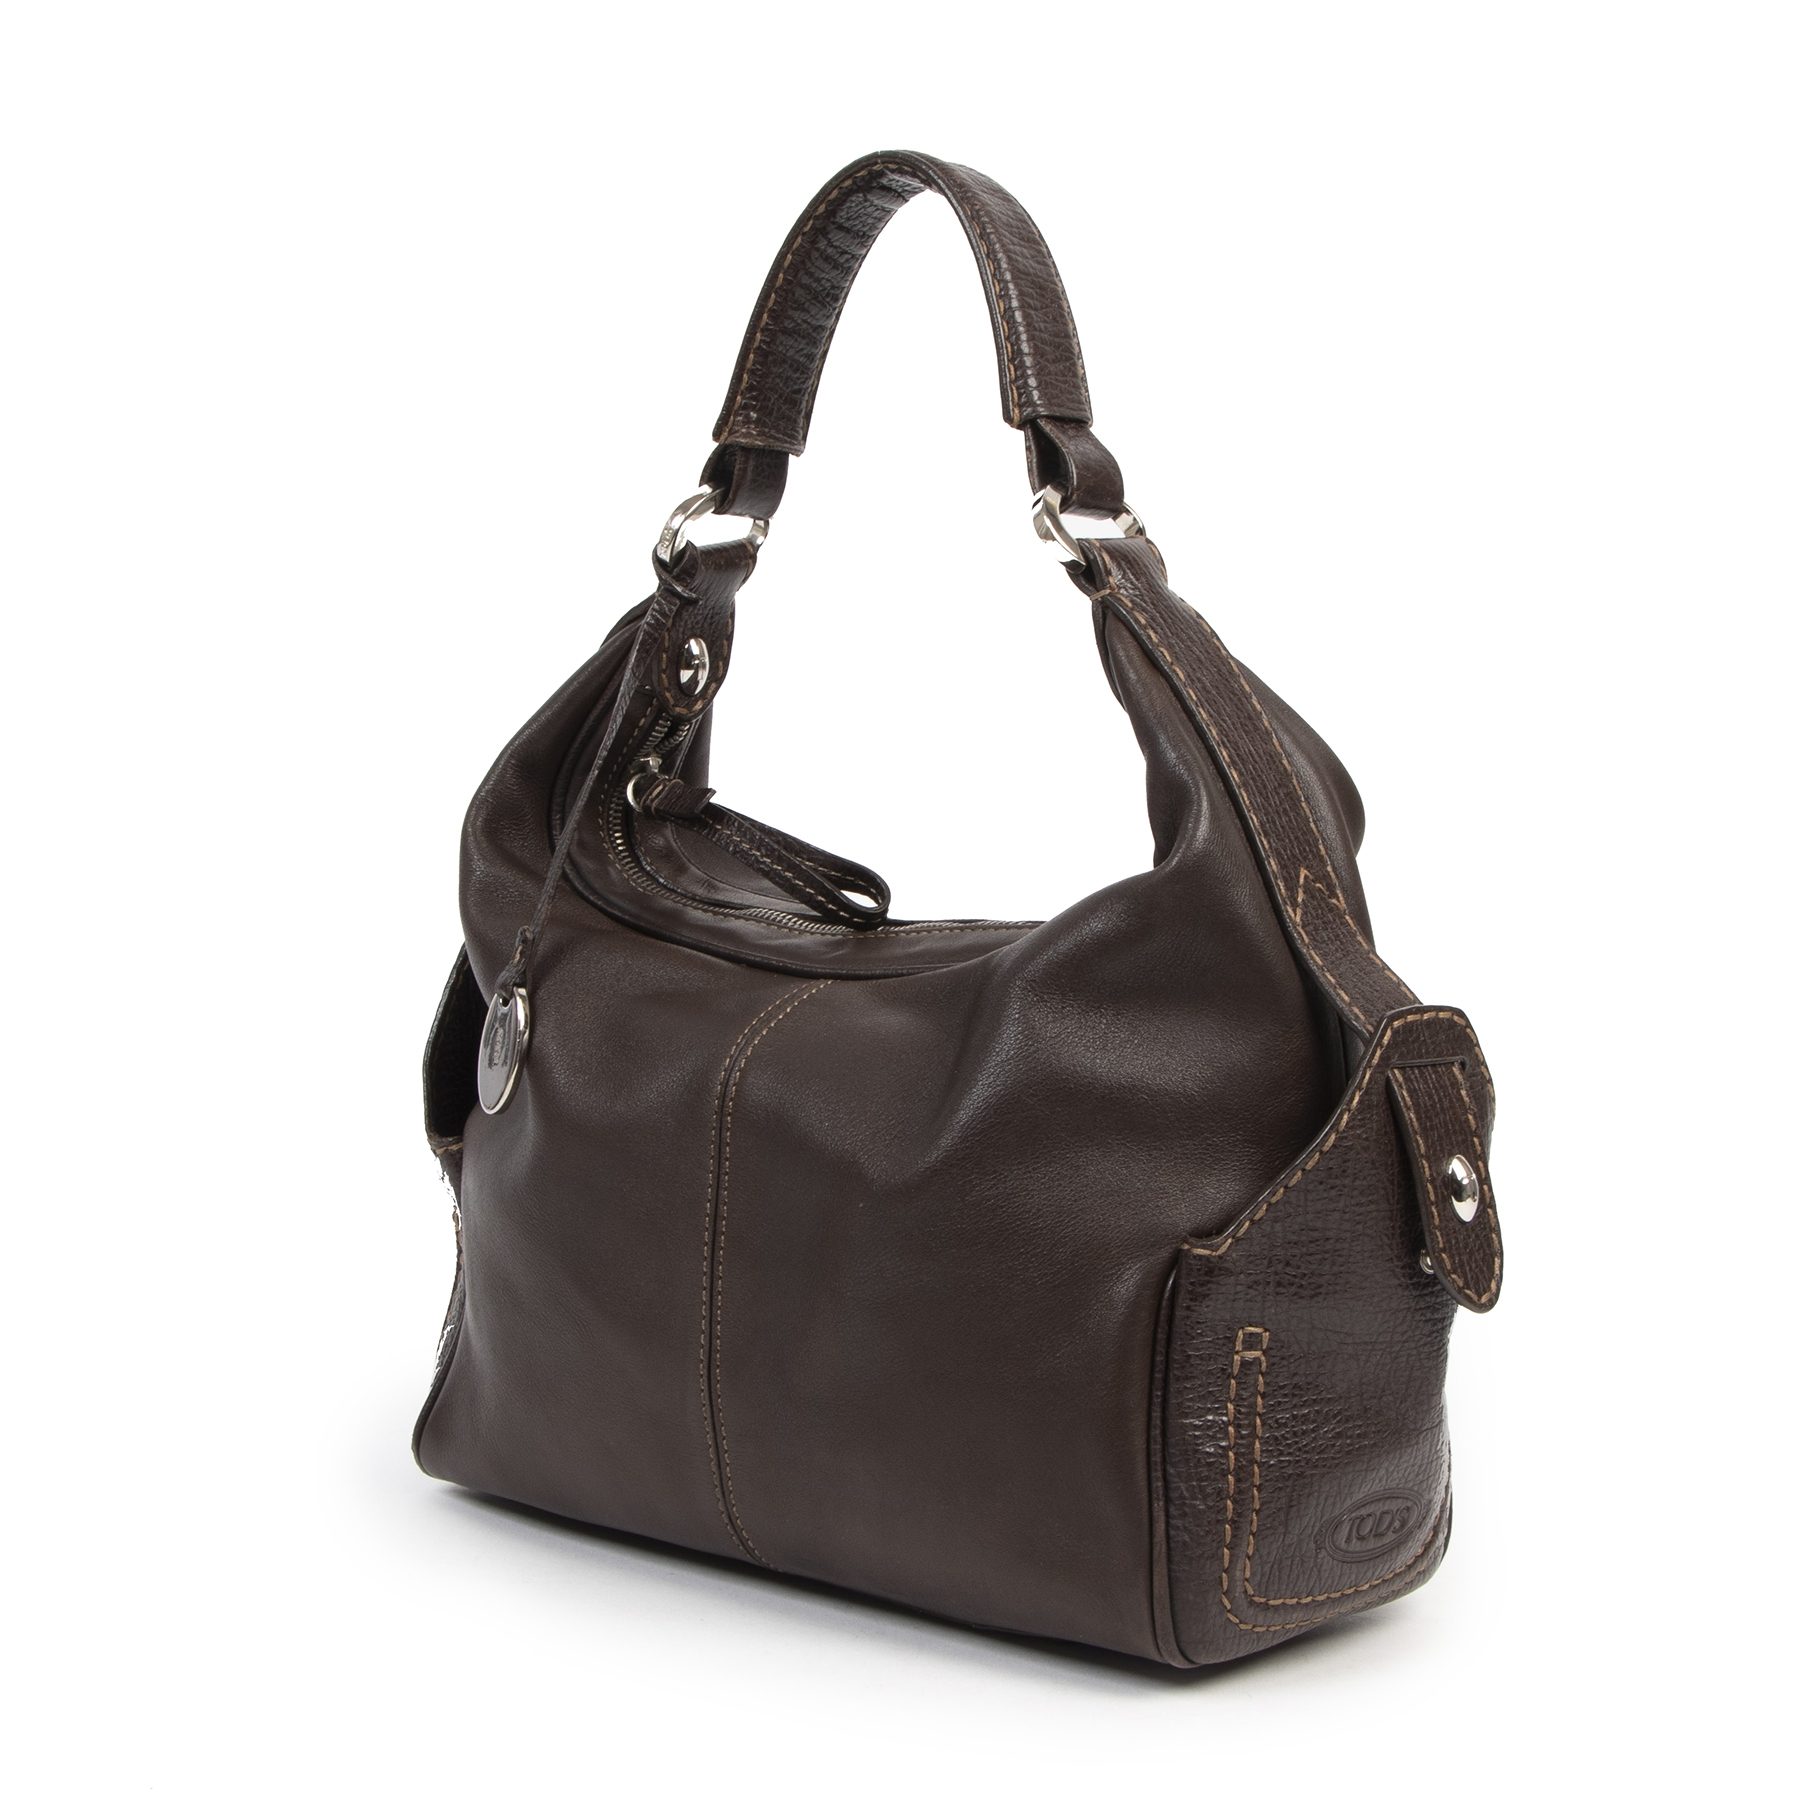 Authentic second-hand vintage Tods Brown Top Handle Hobo Bag buy online webshop LabelLOV